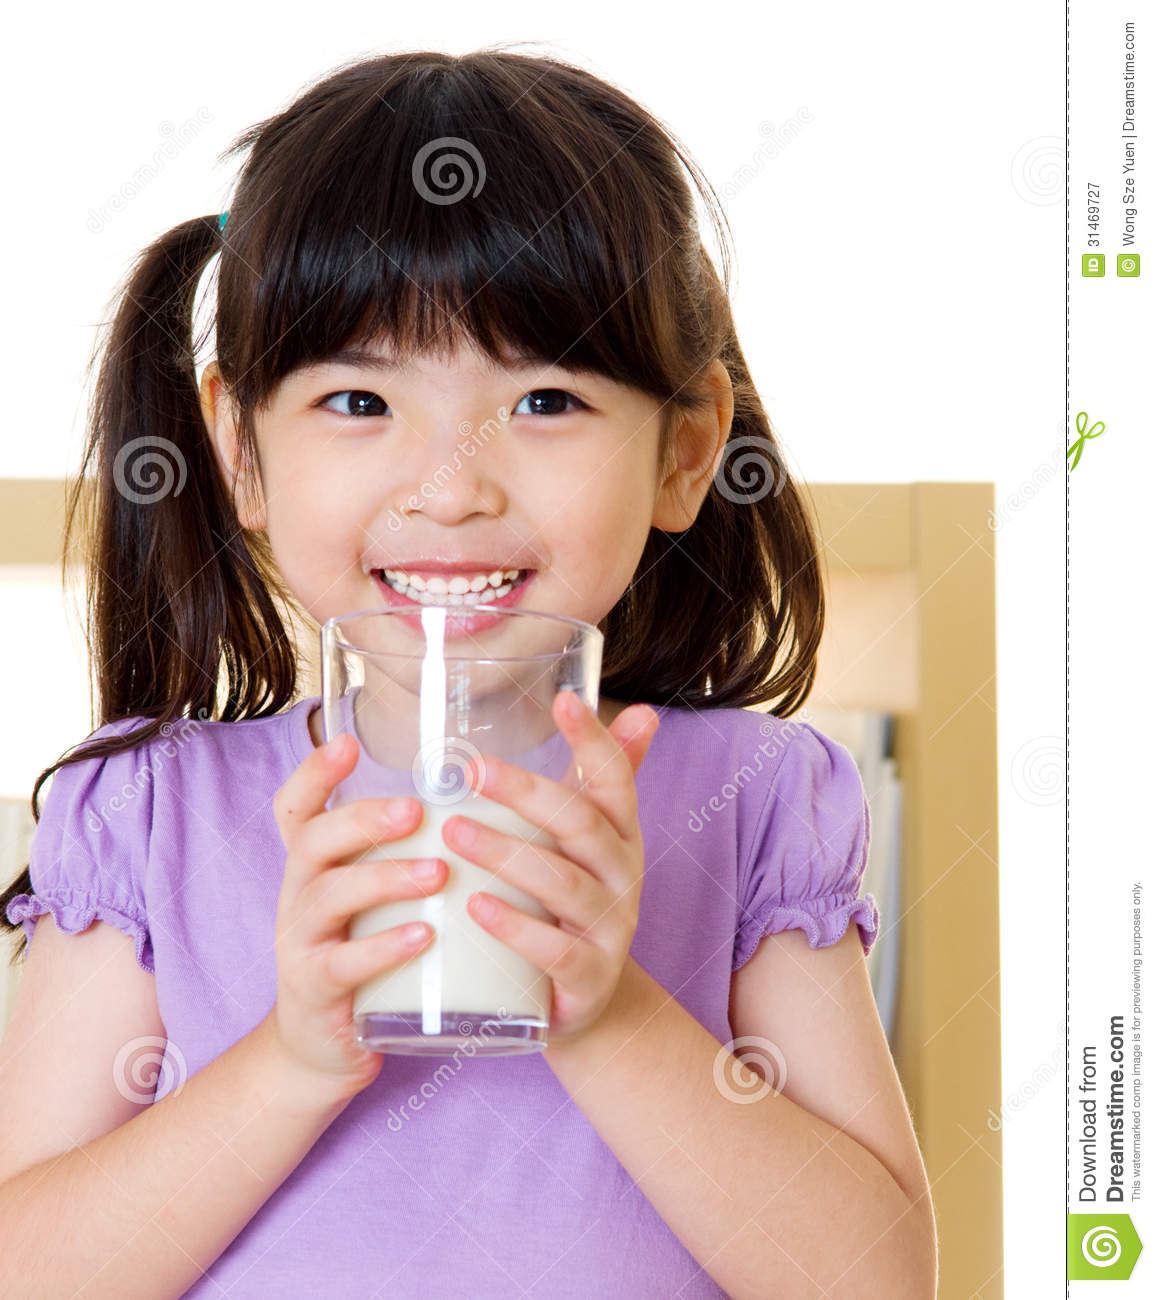 attitude of young adults towards drinking milk in pkaitsan essay An enzyme necessary for digesting the lactose in milk people their young is called crop milk and bears between drinking milk and.